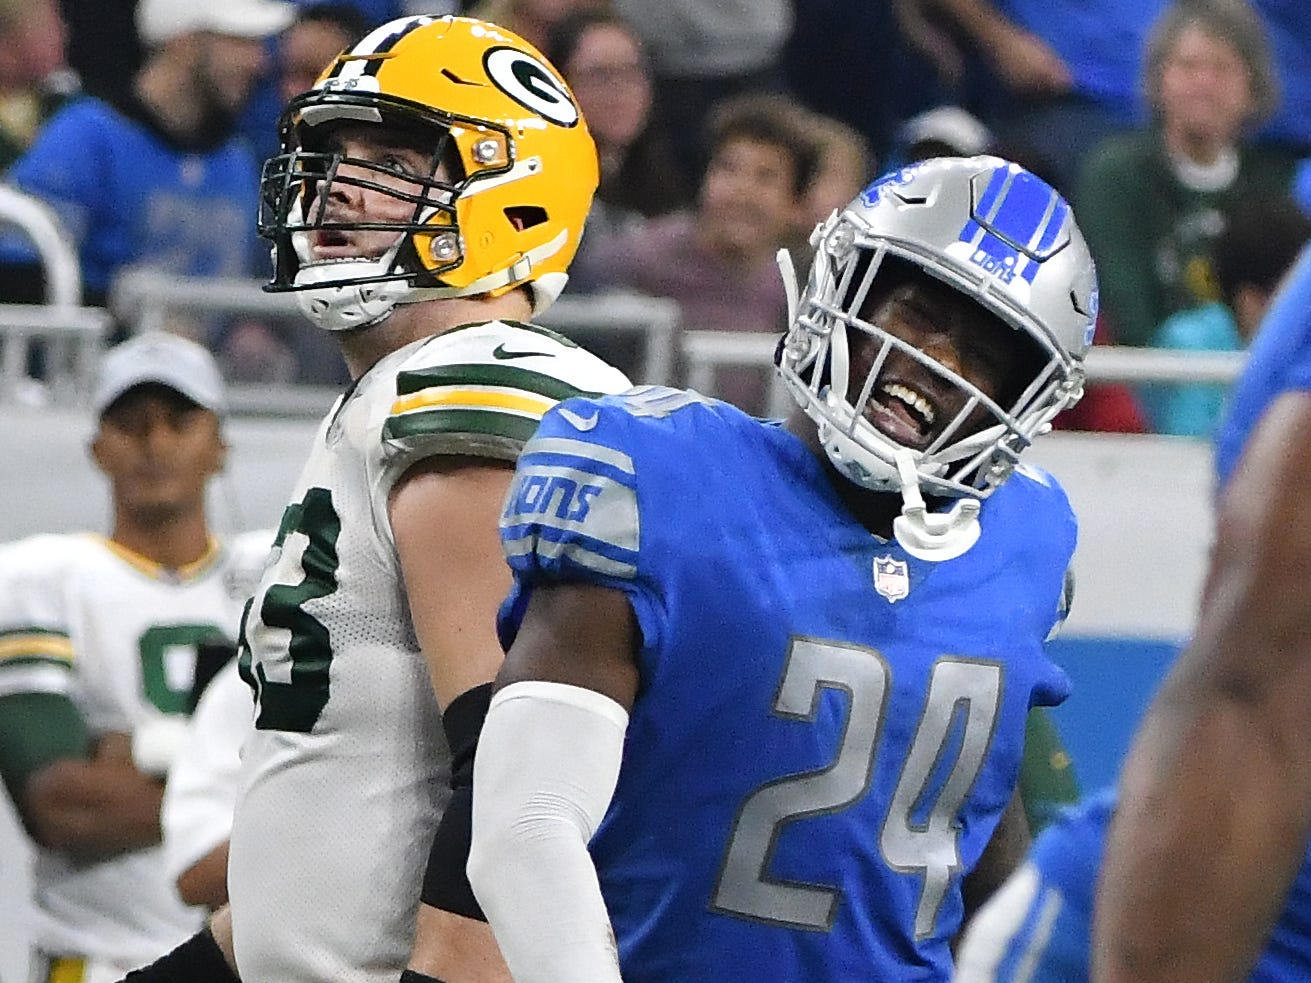 Lions' Nevin Lawson celebrates a defensive sack on Packers quarterback Aaron Rodgers late in the second quarter. NFL Detroit Lions vs. Green Bay Packers at Ford Field in Detroit, Michigan on Oct. 7, 2018.